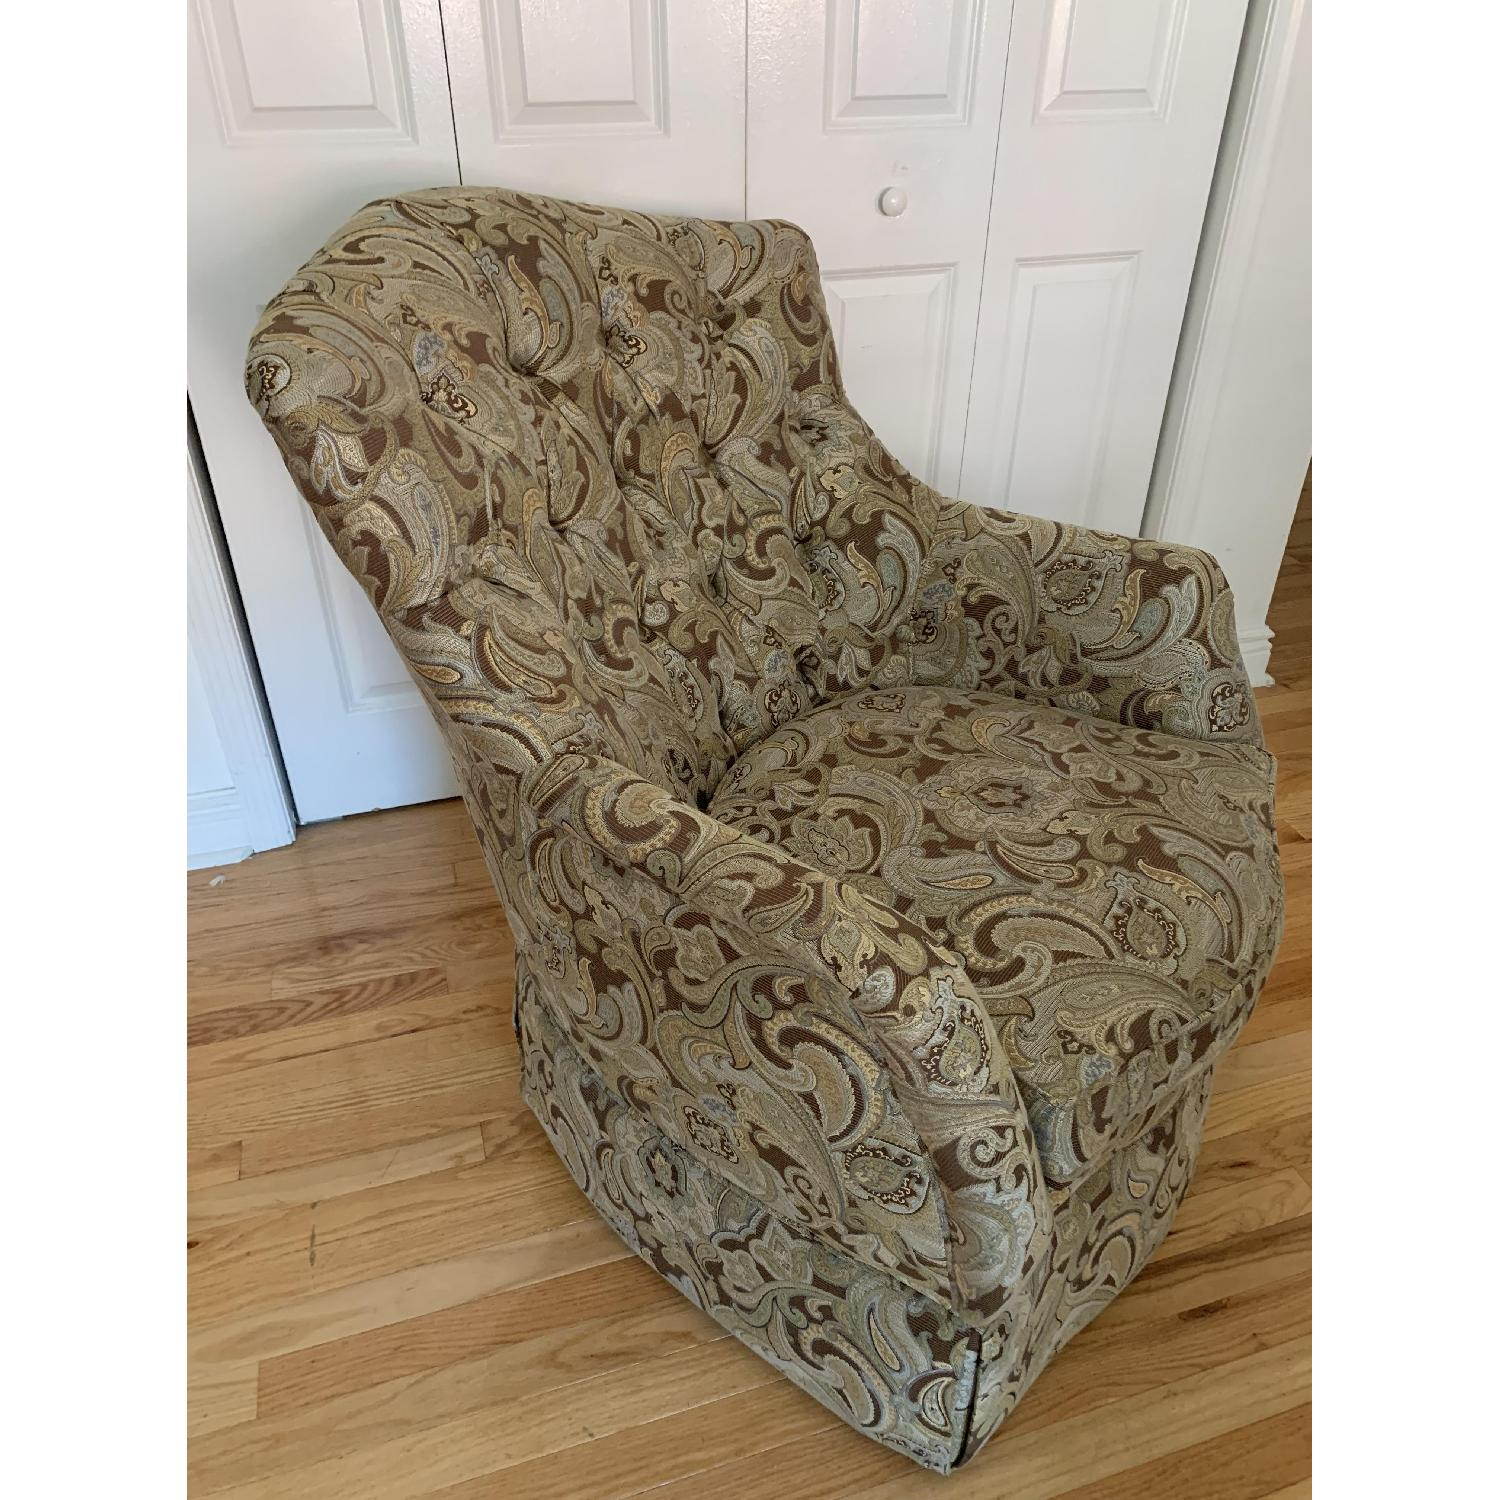 Schnadig Upholstered Arm Chair - image-2